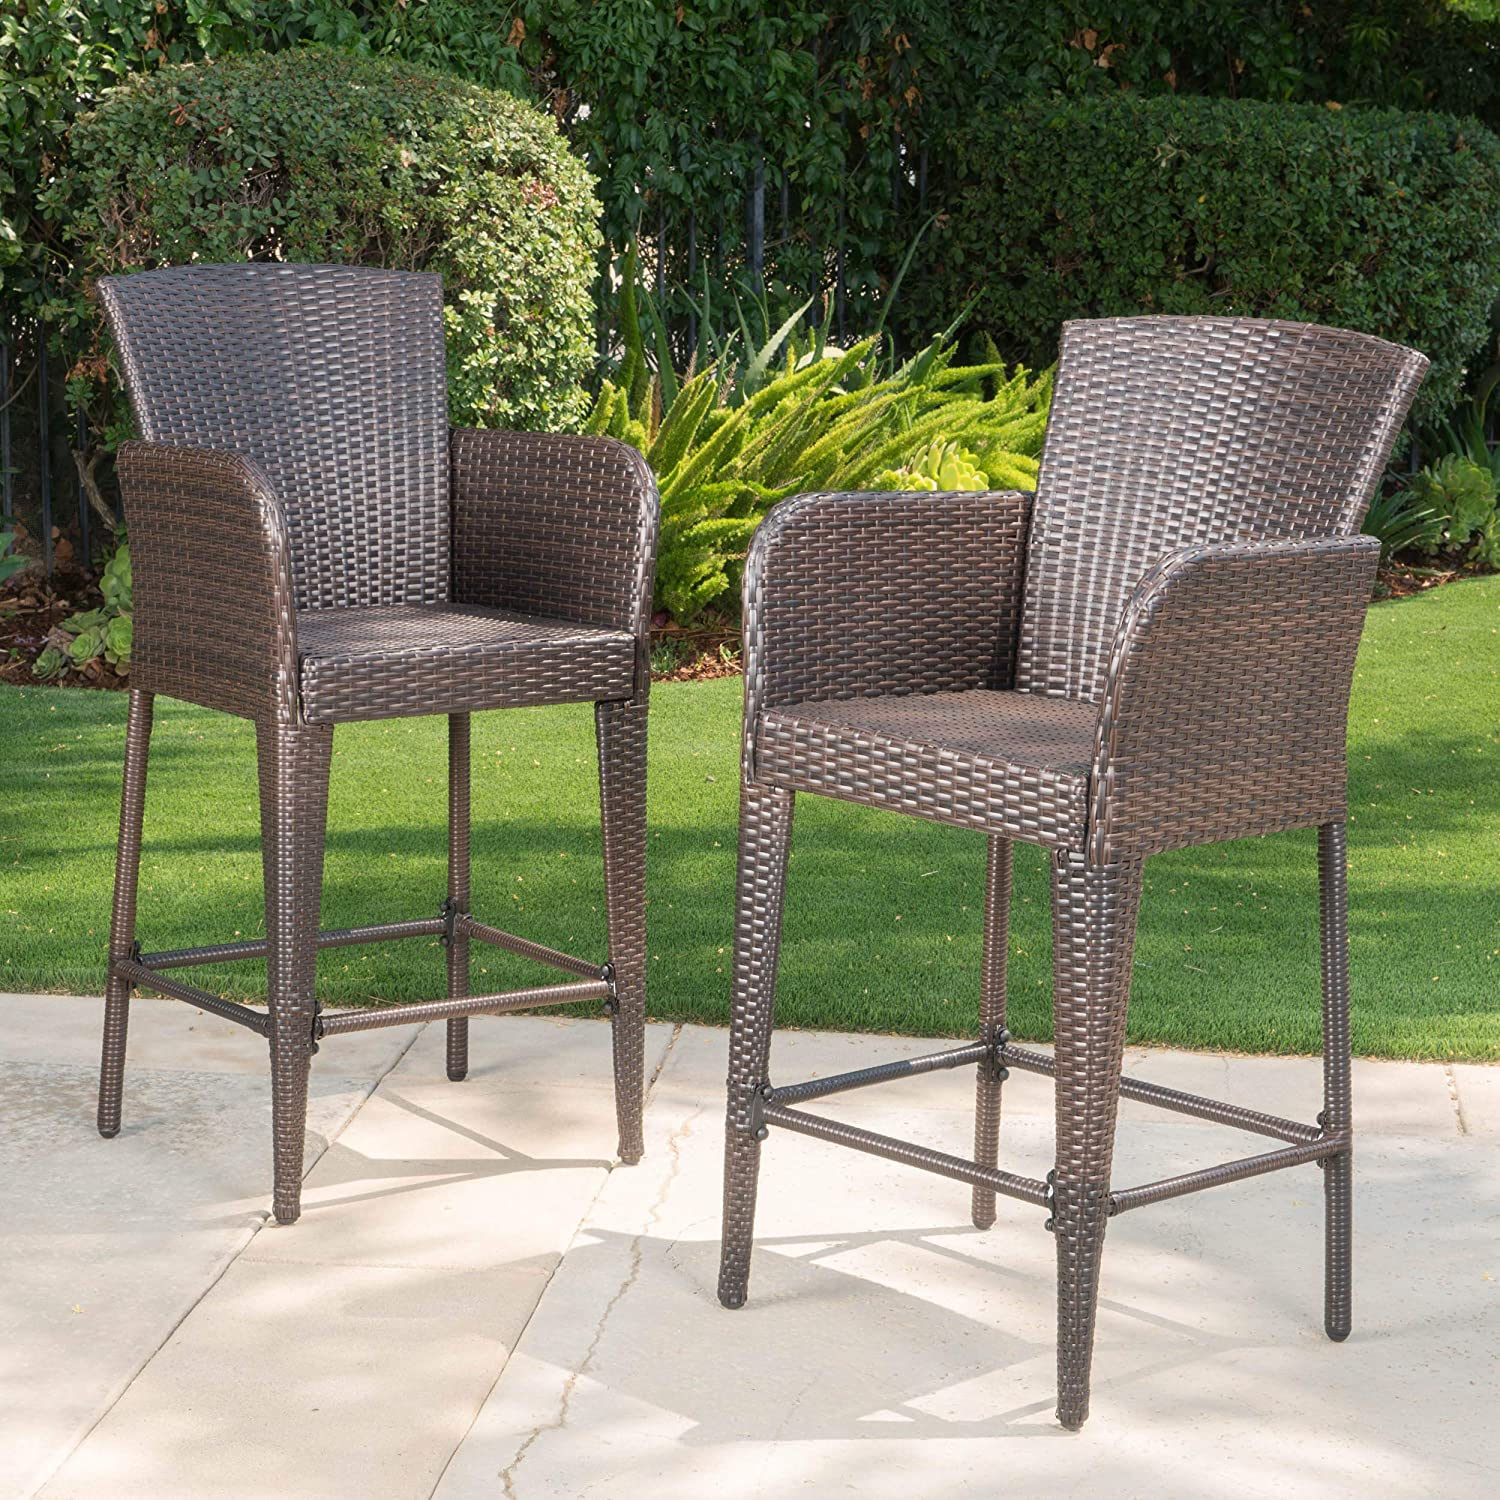 Christopher Knight Home 298899 Seawall Patio Furniture Outdoor Wicker Bar Stool Set of 2 Brown